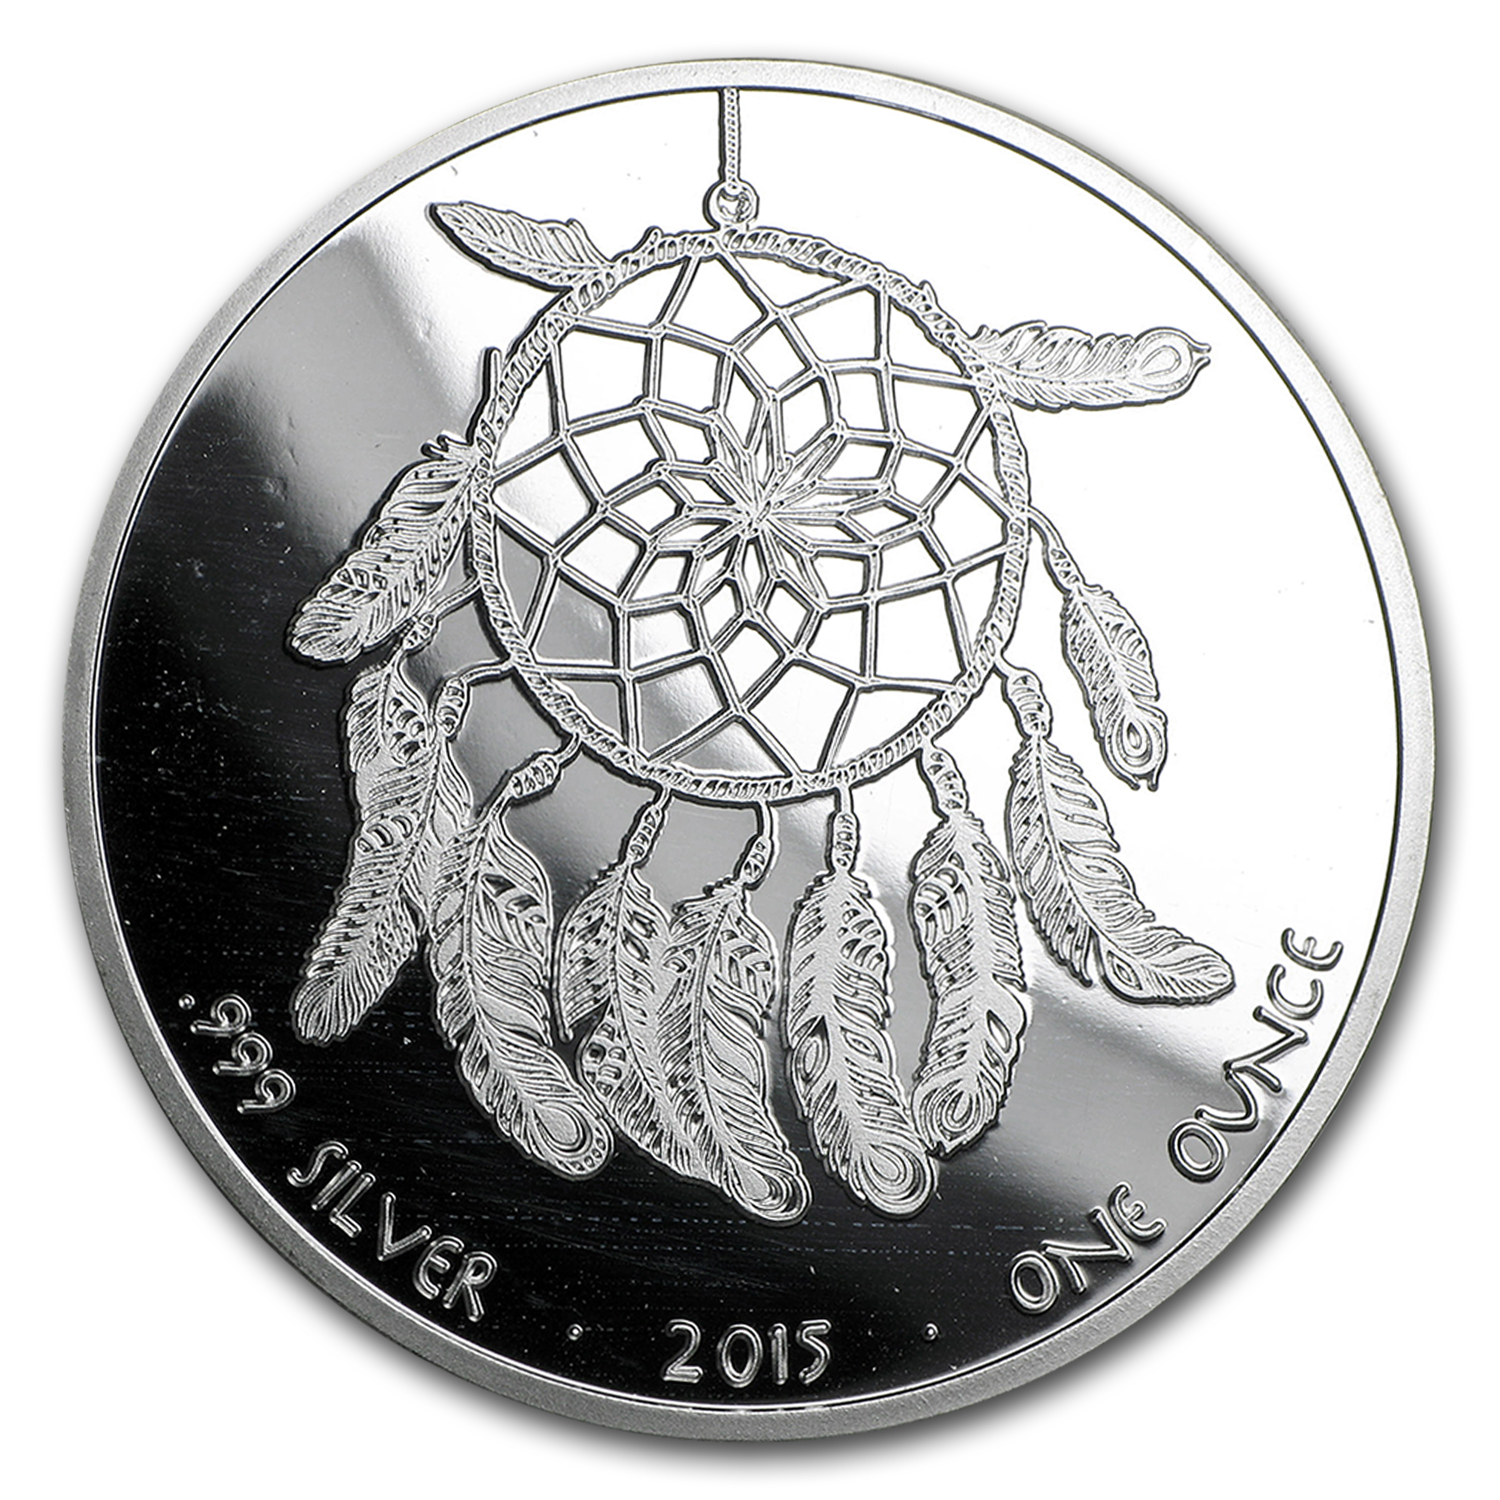 2015 1 oz Silver Round Proof Indian Dreamcatcher